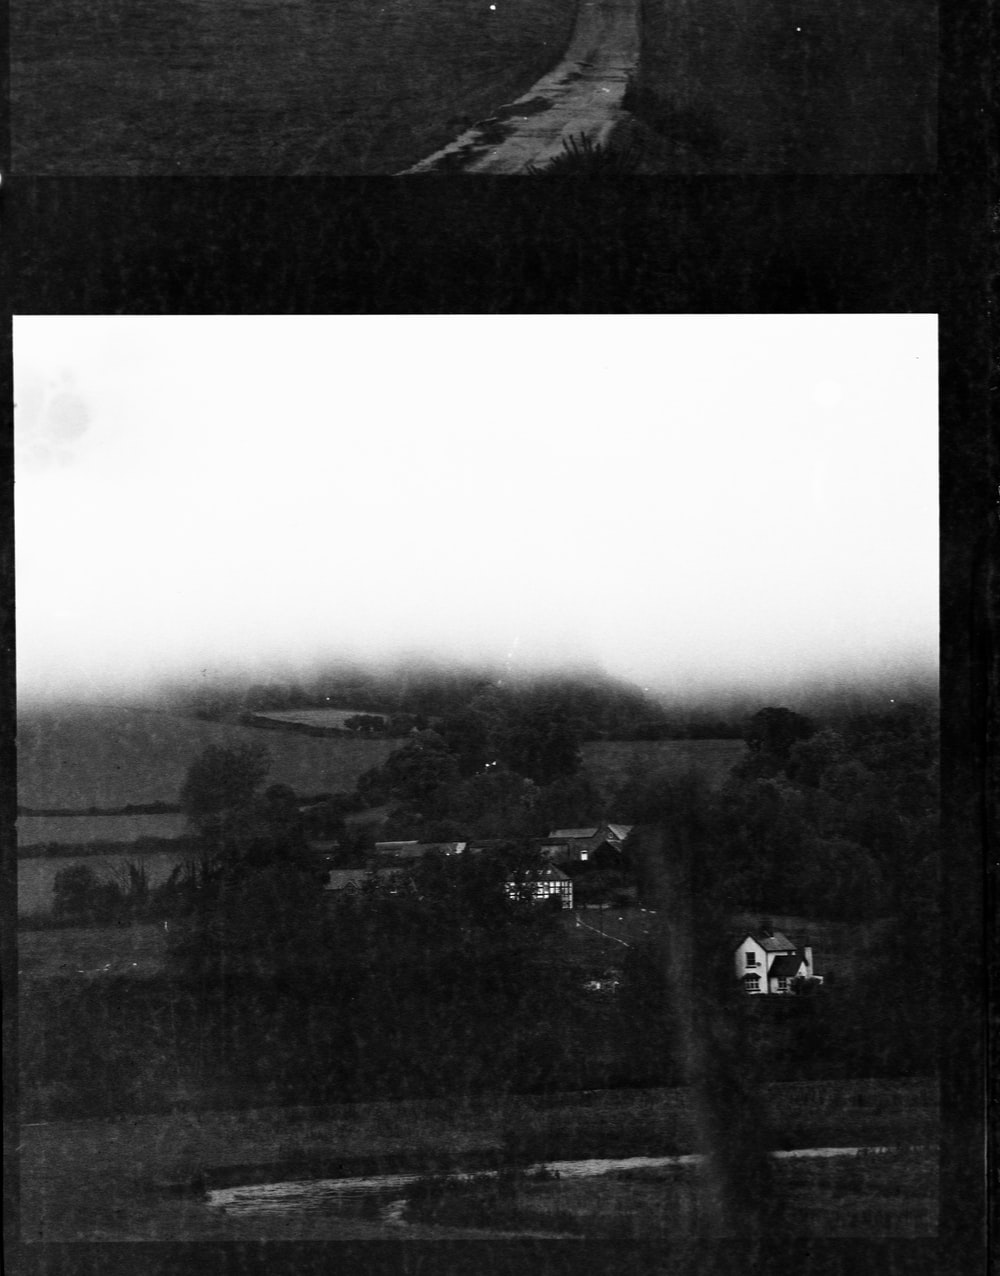 grayscale photo of houses and trees